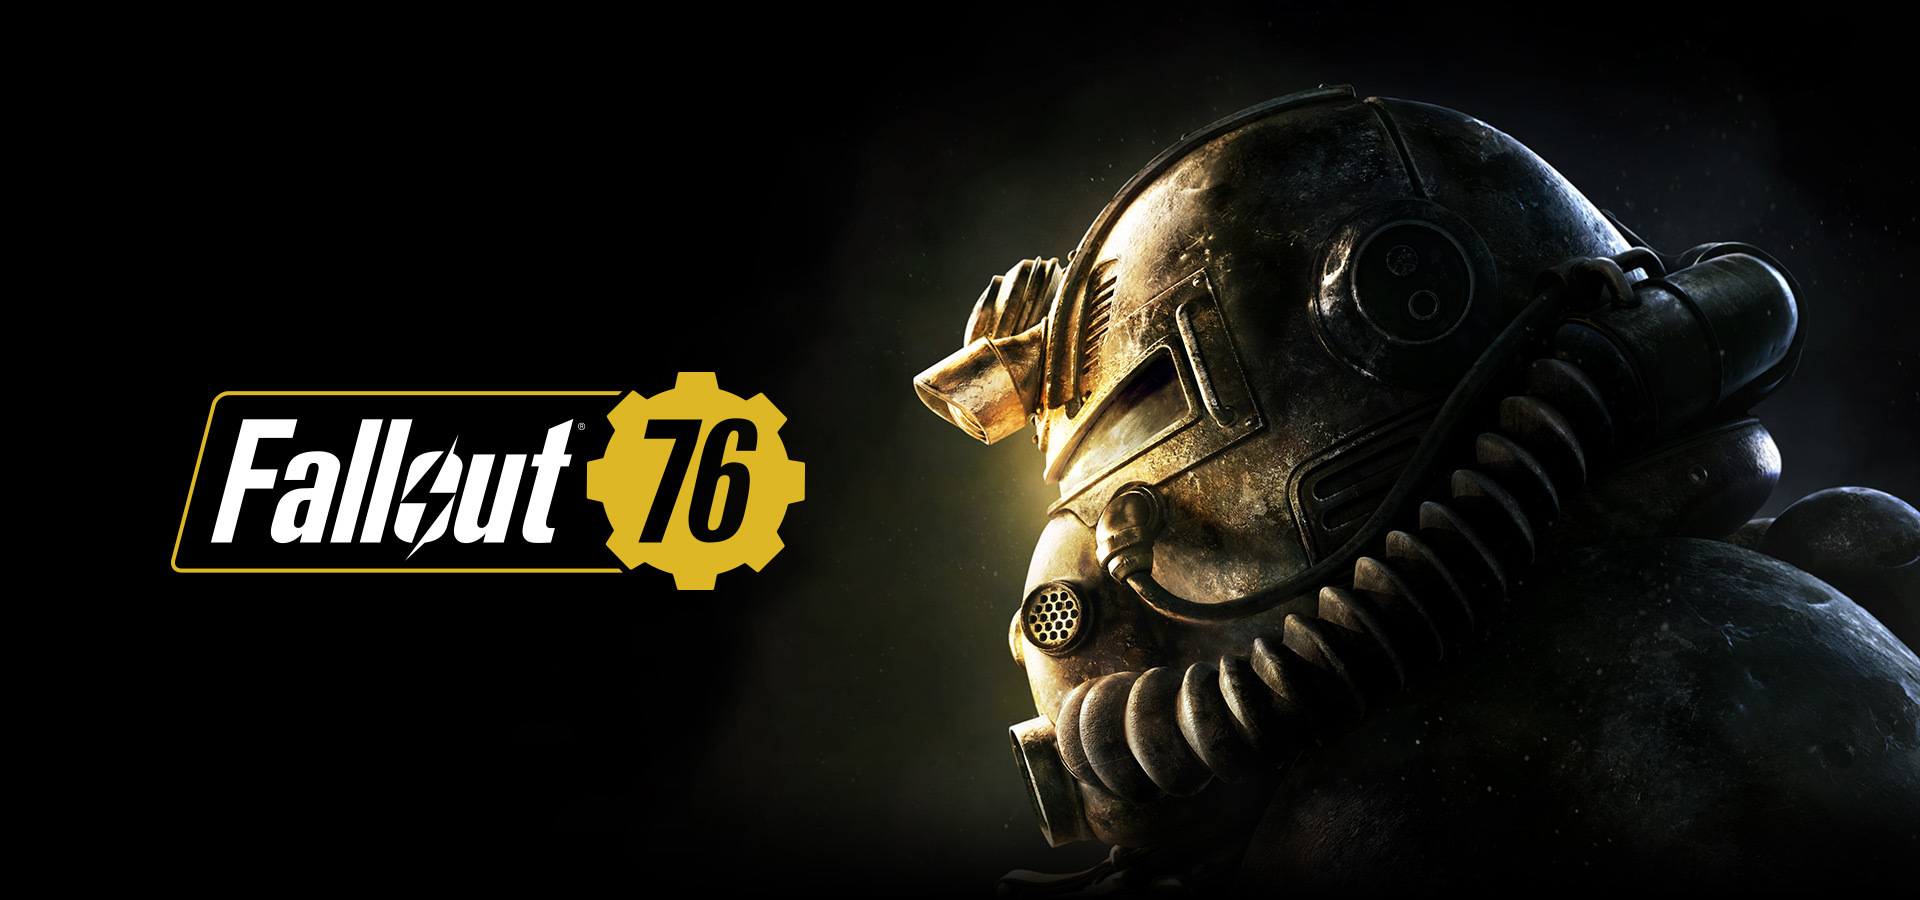 Fallout 76, close-up side view of a Power Armor Helmet